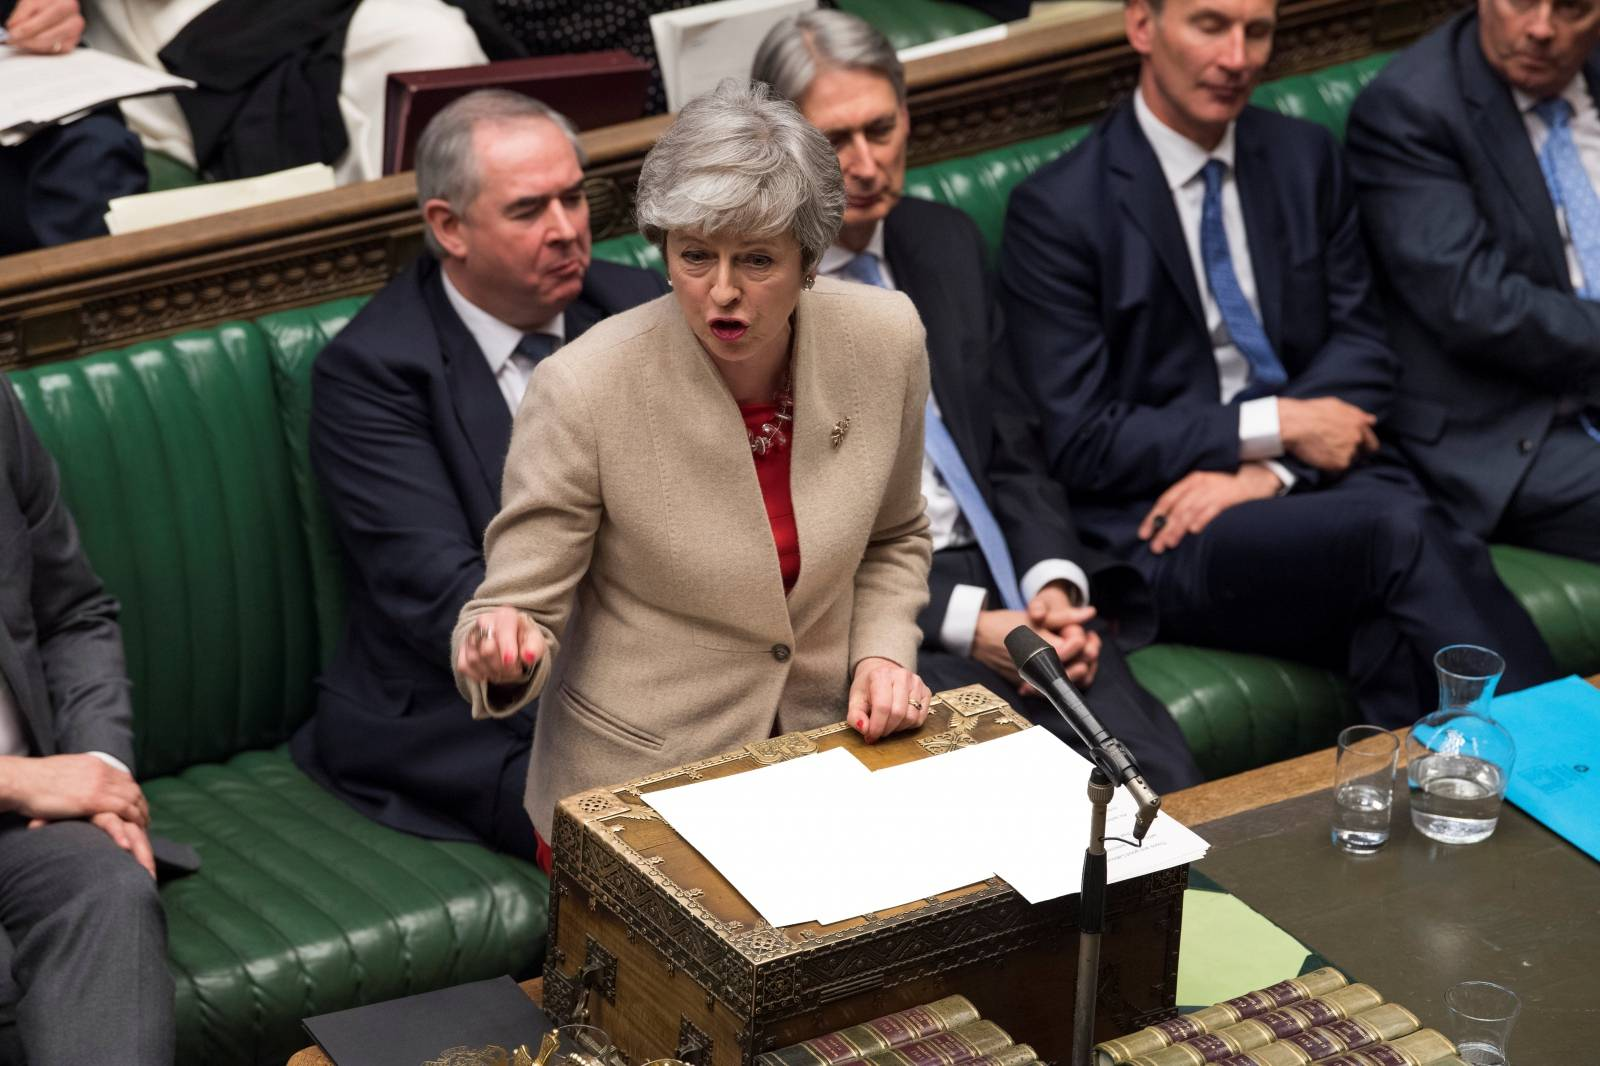 British Prime Minister Theresa May speaks at the House of Commons in London